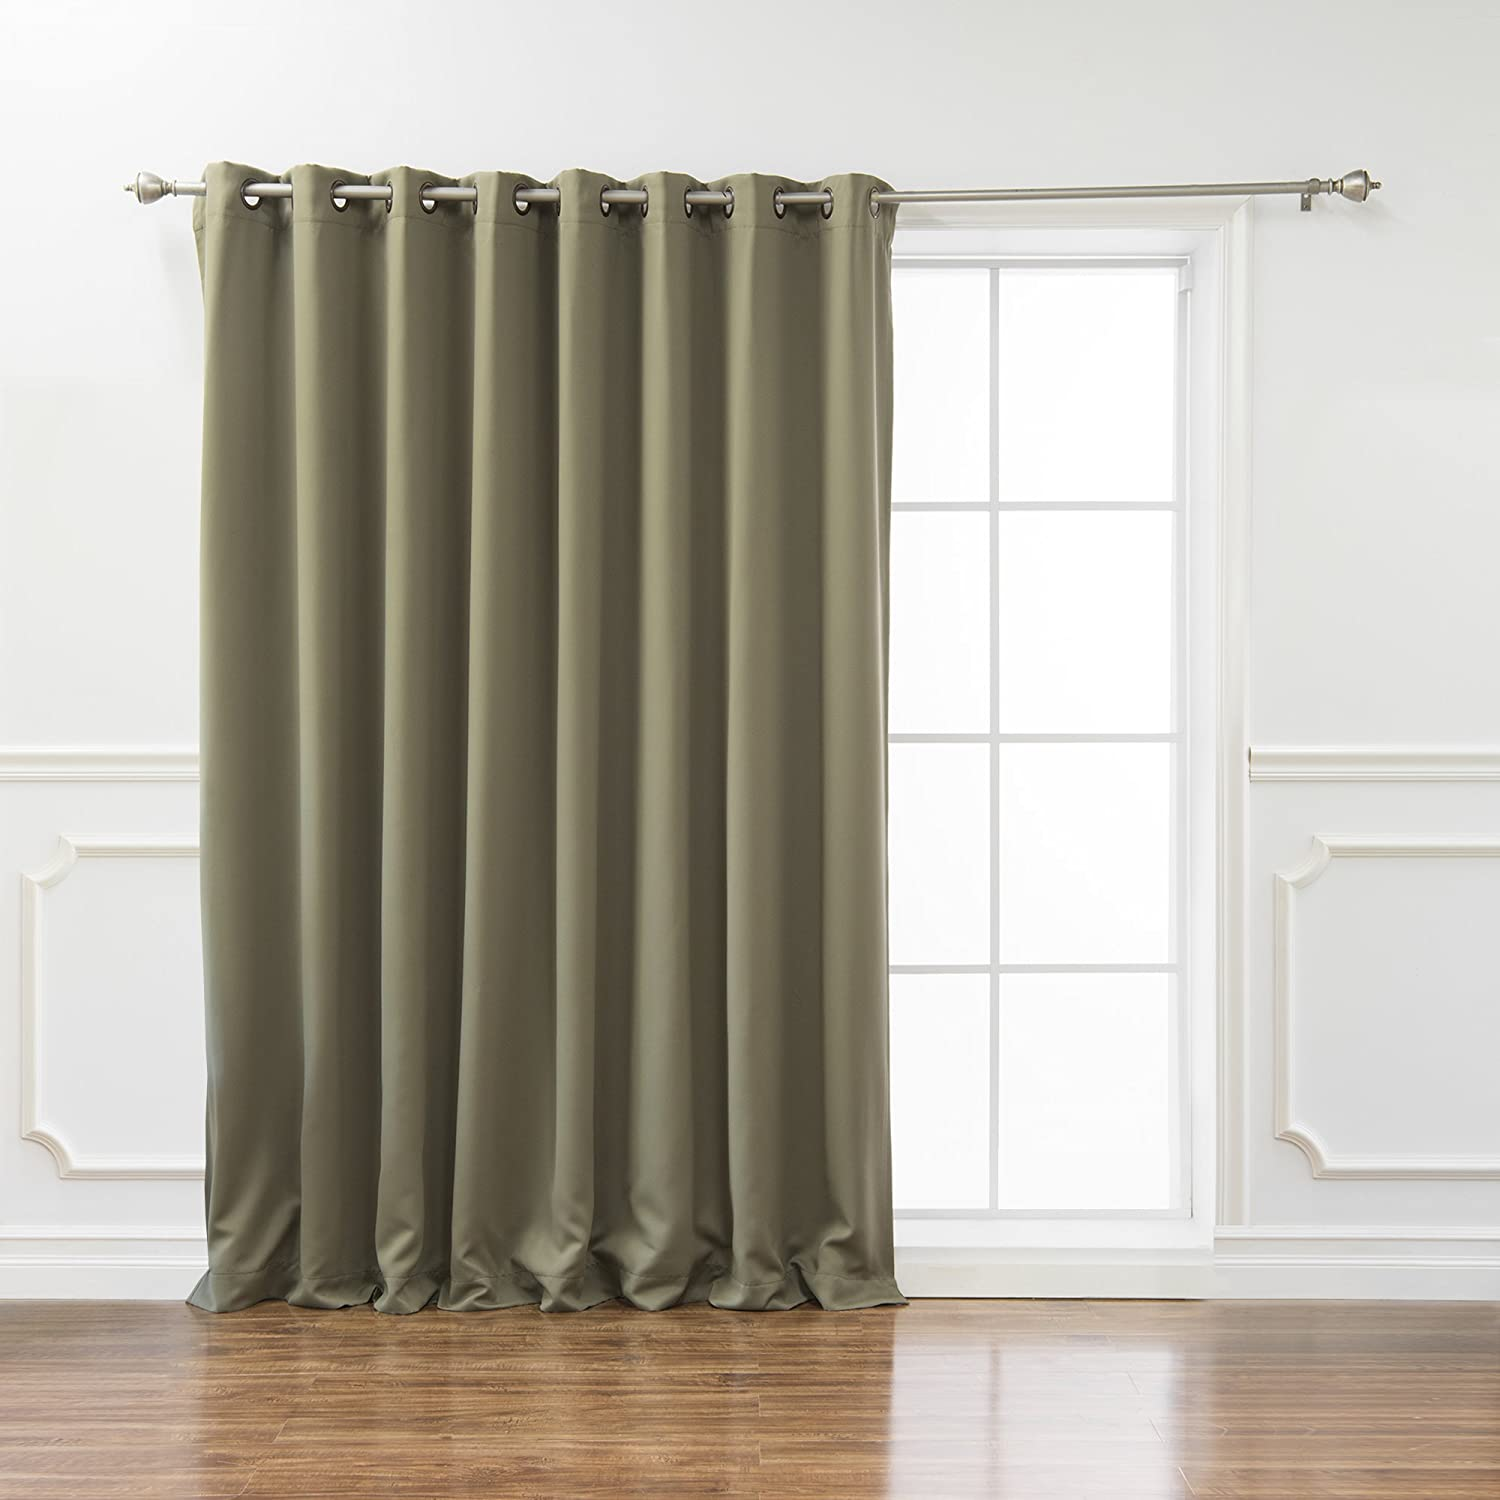 "Best Home Fashion Wide Width Thermal Insulated Blackout Curtain - Antique Bronze Grommet Top - Olive - 100""W x 84""L - (1 Panel)"